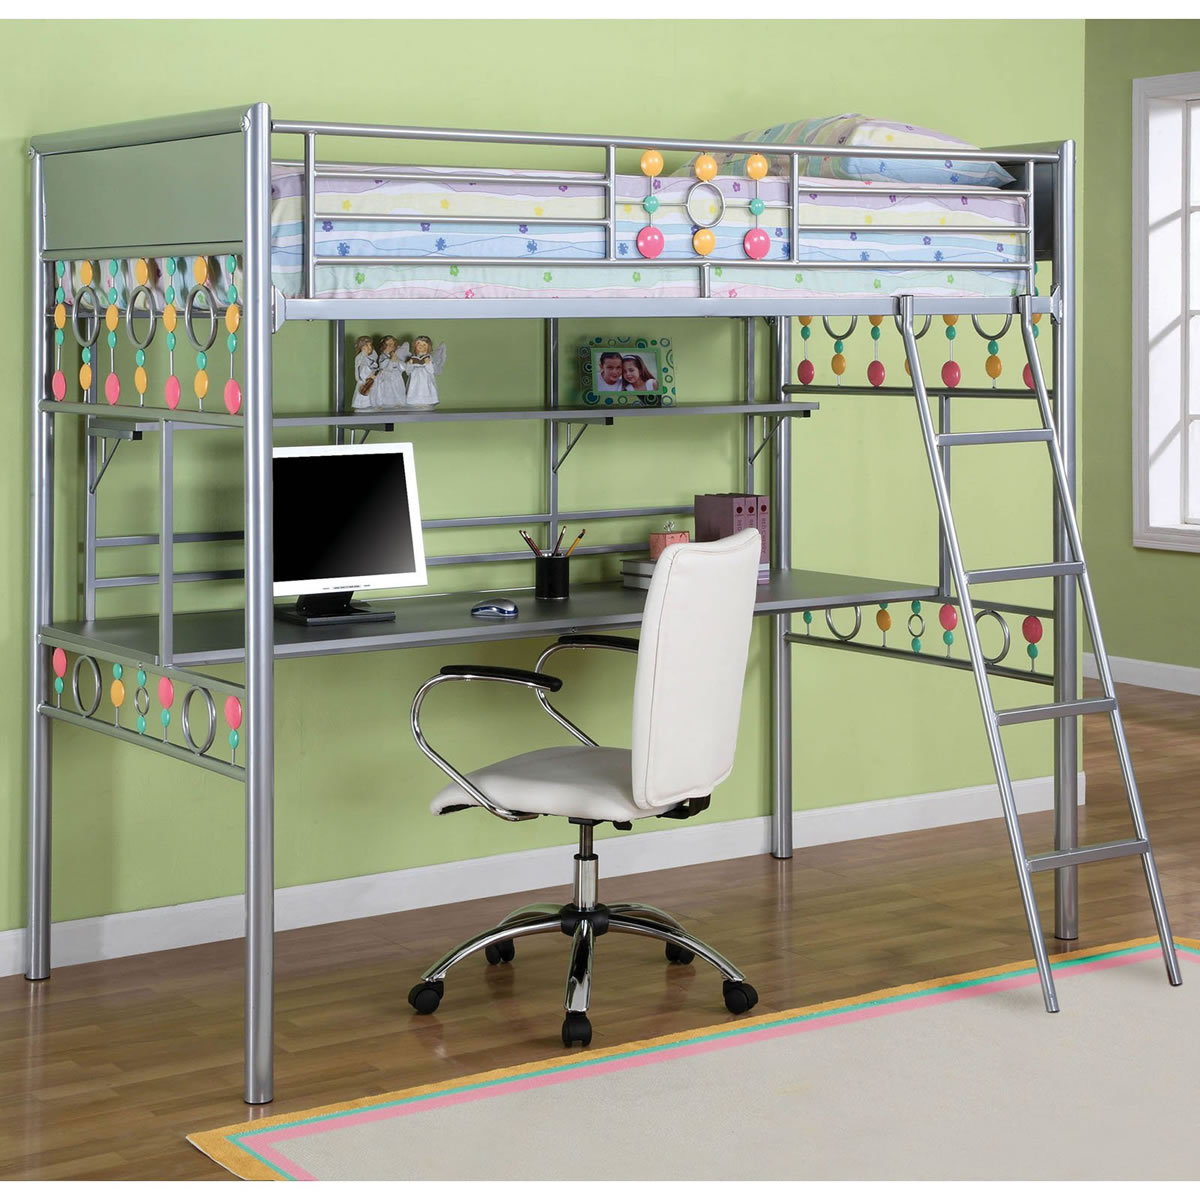 Simple Loft Beds For Teens With Desk Green Wall And Wooden Floor